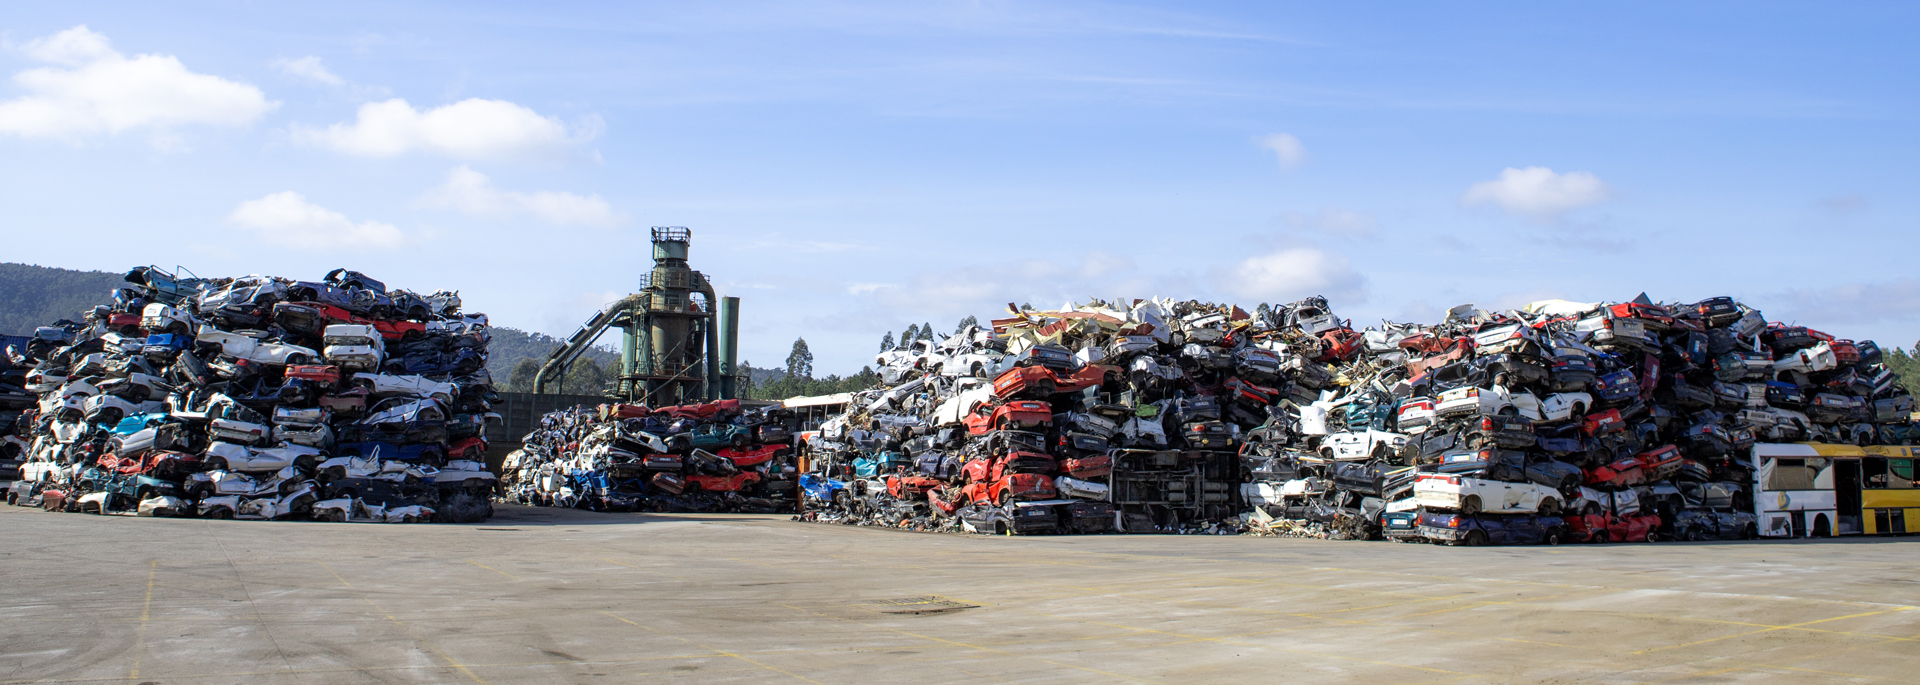 Do you know MJD has more than 60000 dismantled vehicles?